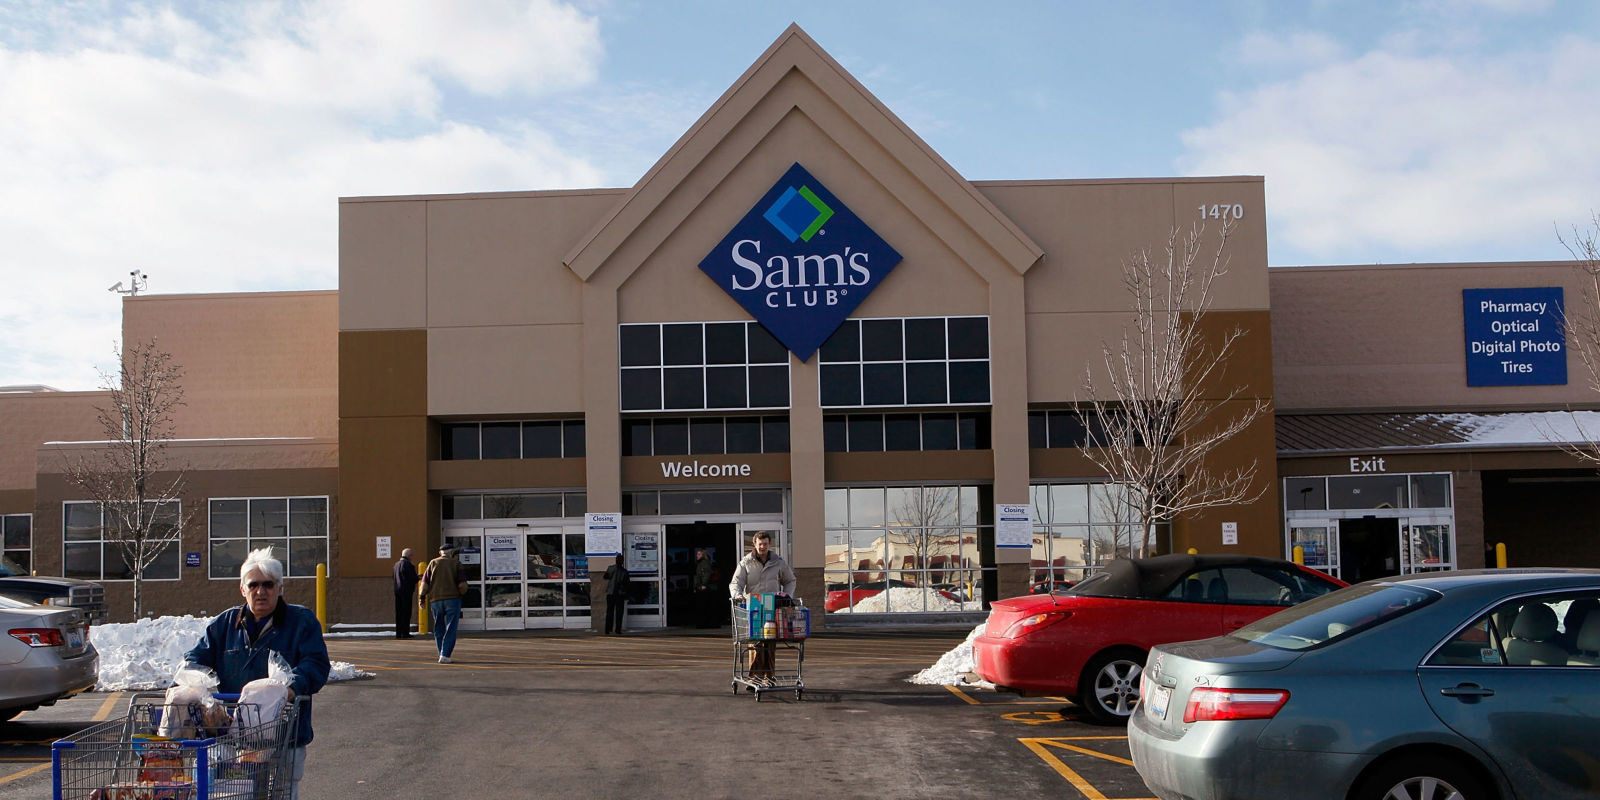 Order online and get groceries from Sam's Club delivered in two hours or less.